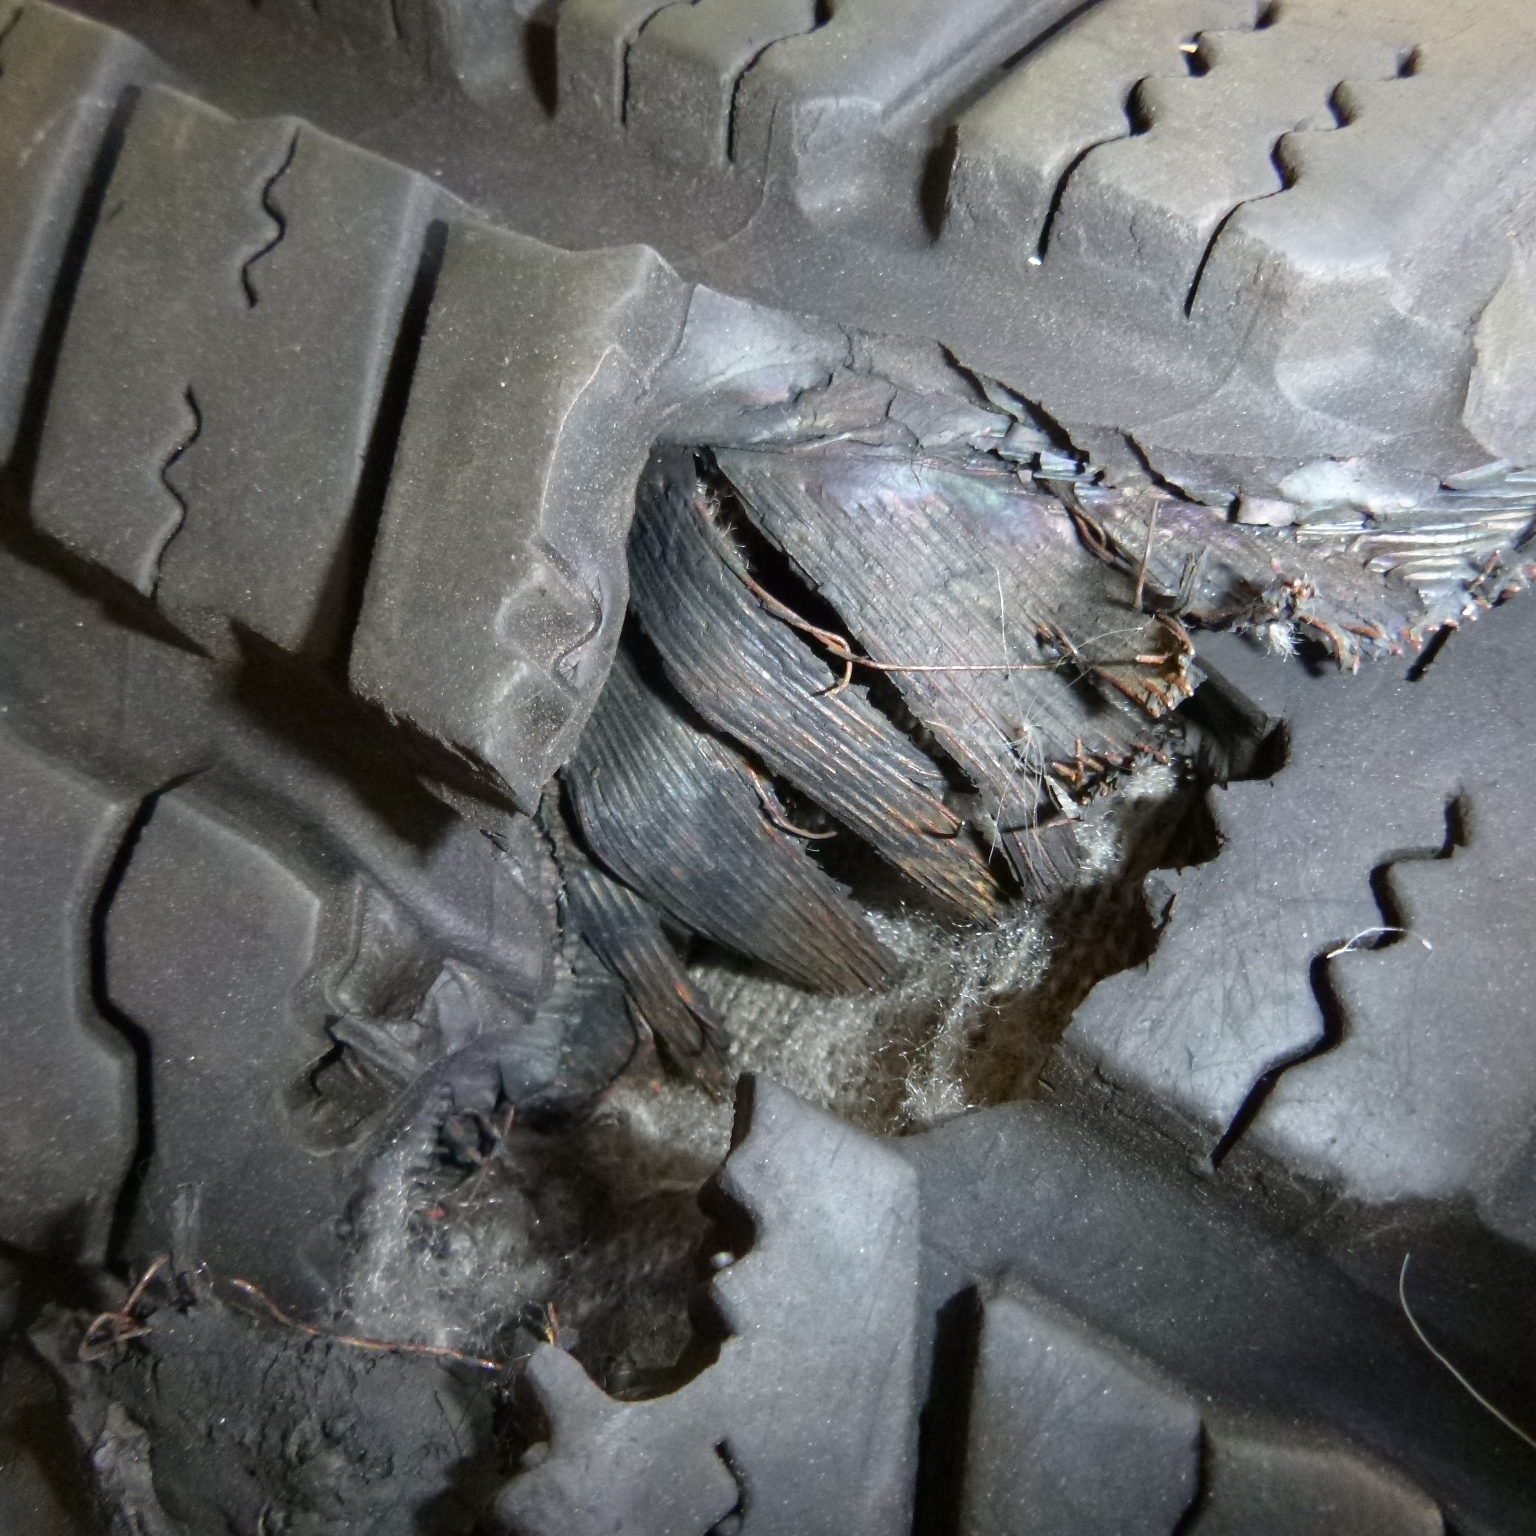 Inspecting failed automobile tire